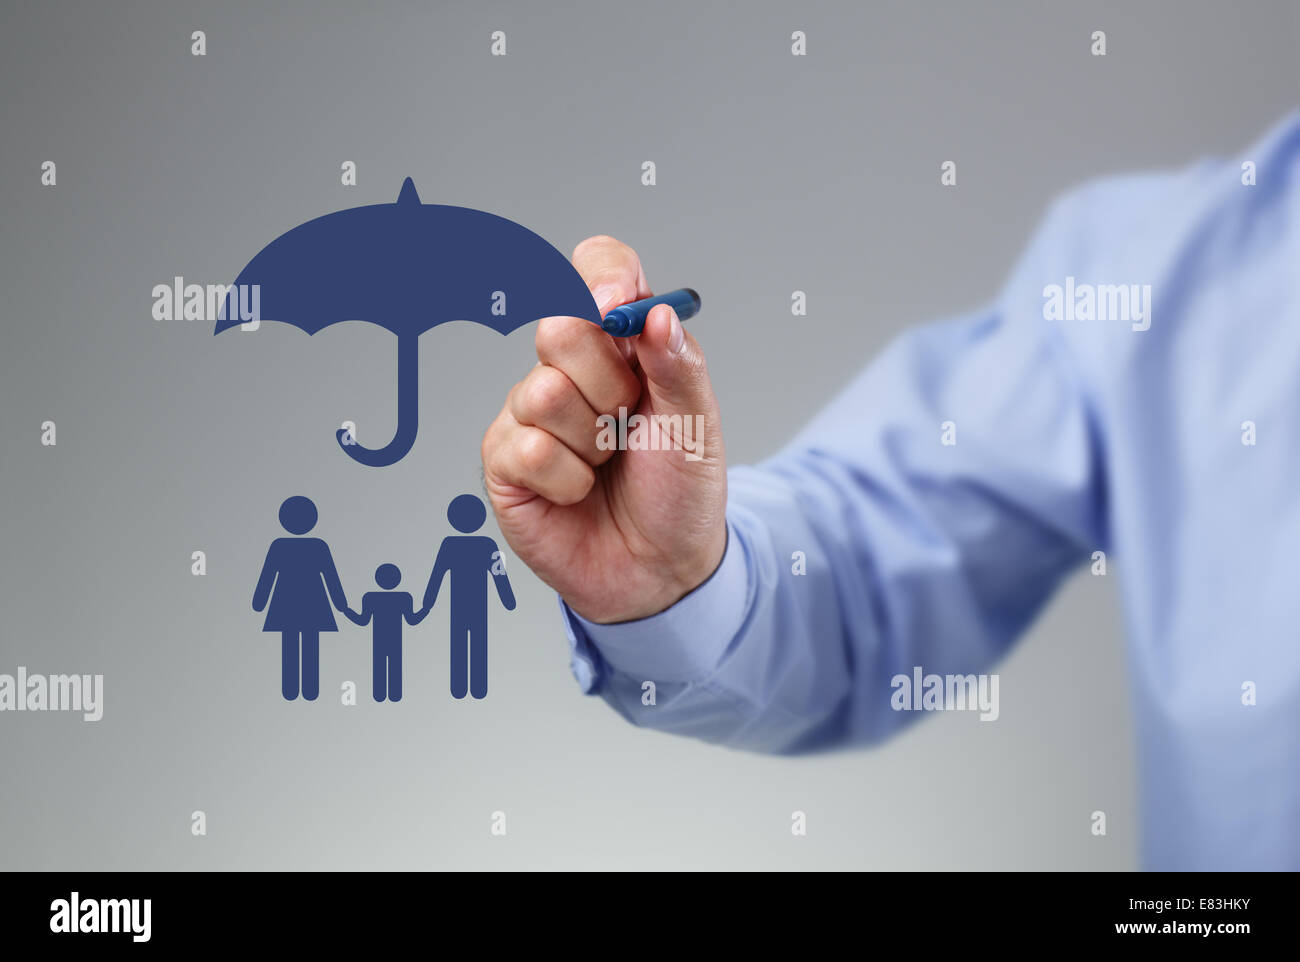 Family protection - Stock Image